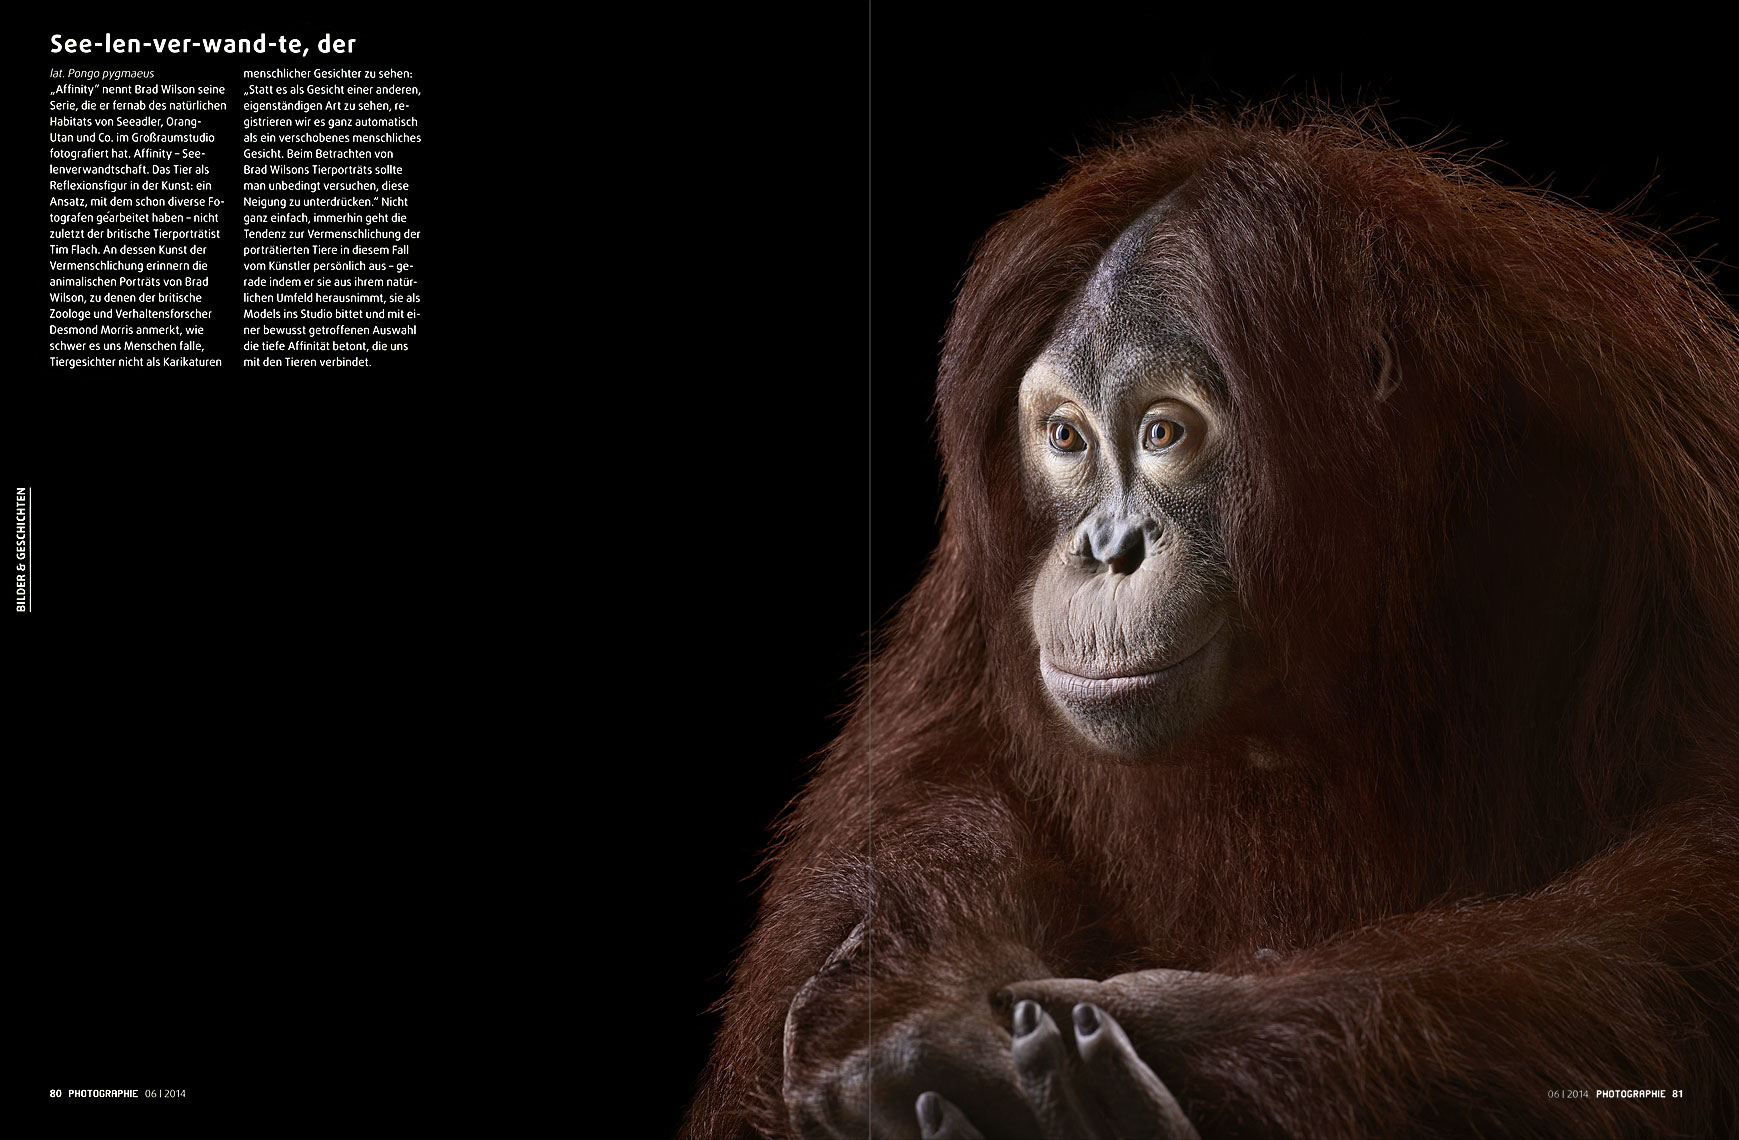 Photographie Magazine article about fine art animal photographer Brad Wilson